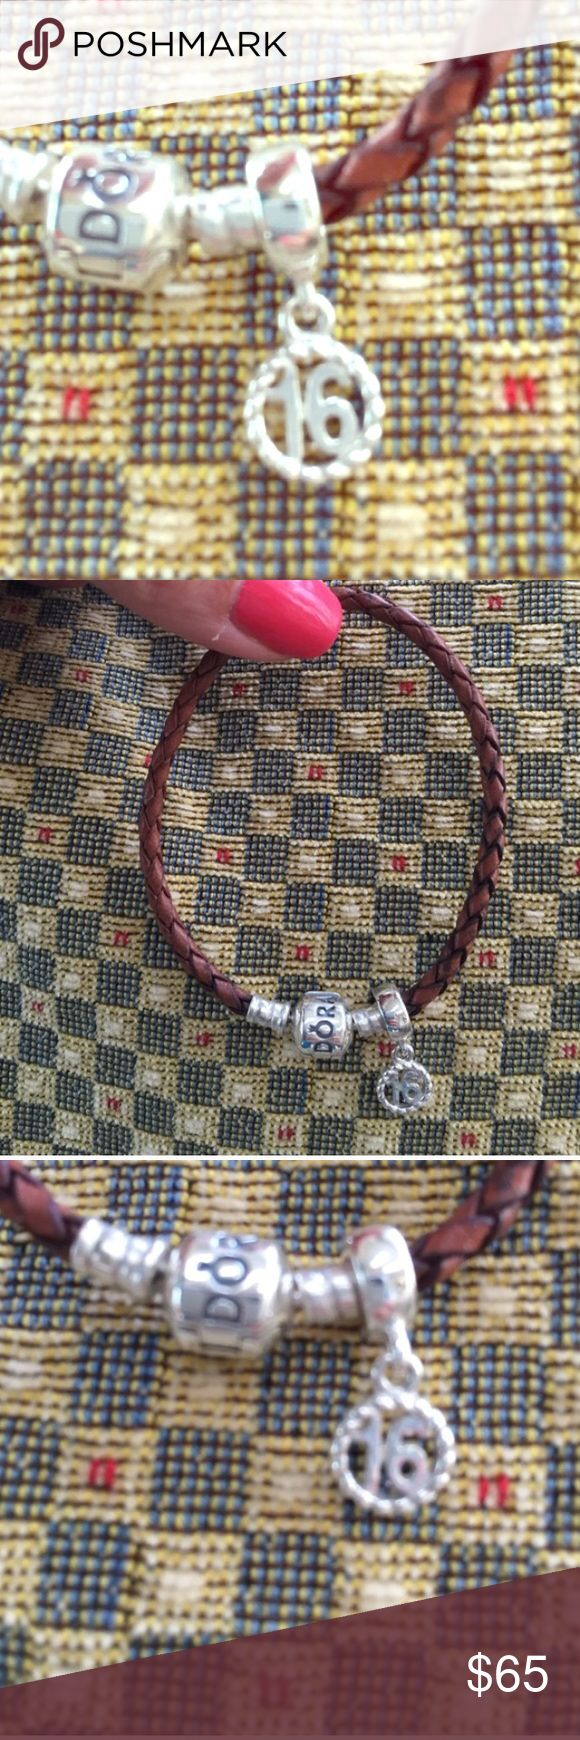 PANDORA ROPE BRACLET AND PANDORA SWEET 16 CHARM PANDORA BROWN LEATHER ROPE BRACELET -  $45 and PANDORA SILVER SWEET 16 CHARM -  $30 - Perfectly loved condition! Will ship immediately! Sold separately prices listed or sold together at sale price $65 Pandora Jewelry Bracelets